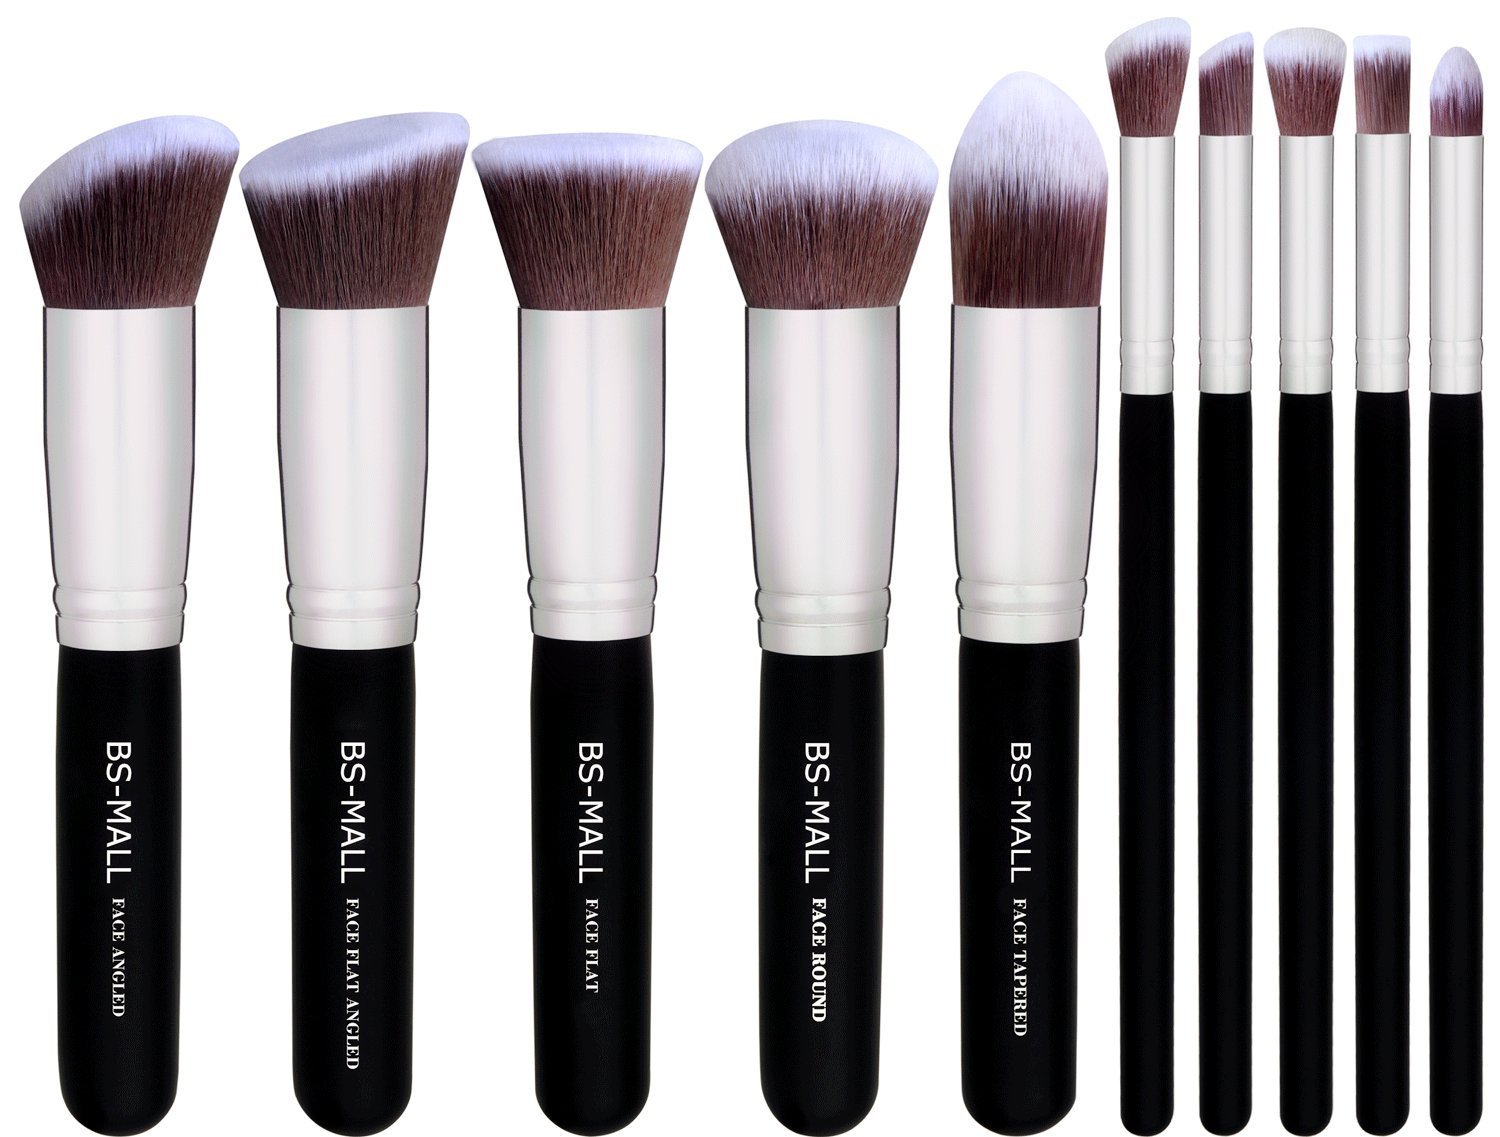 best makeup brush set reviews compare now. Black Bedroom Furniture Sets. Home Design Ideas